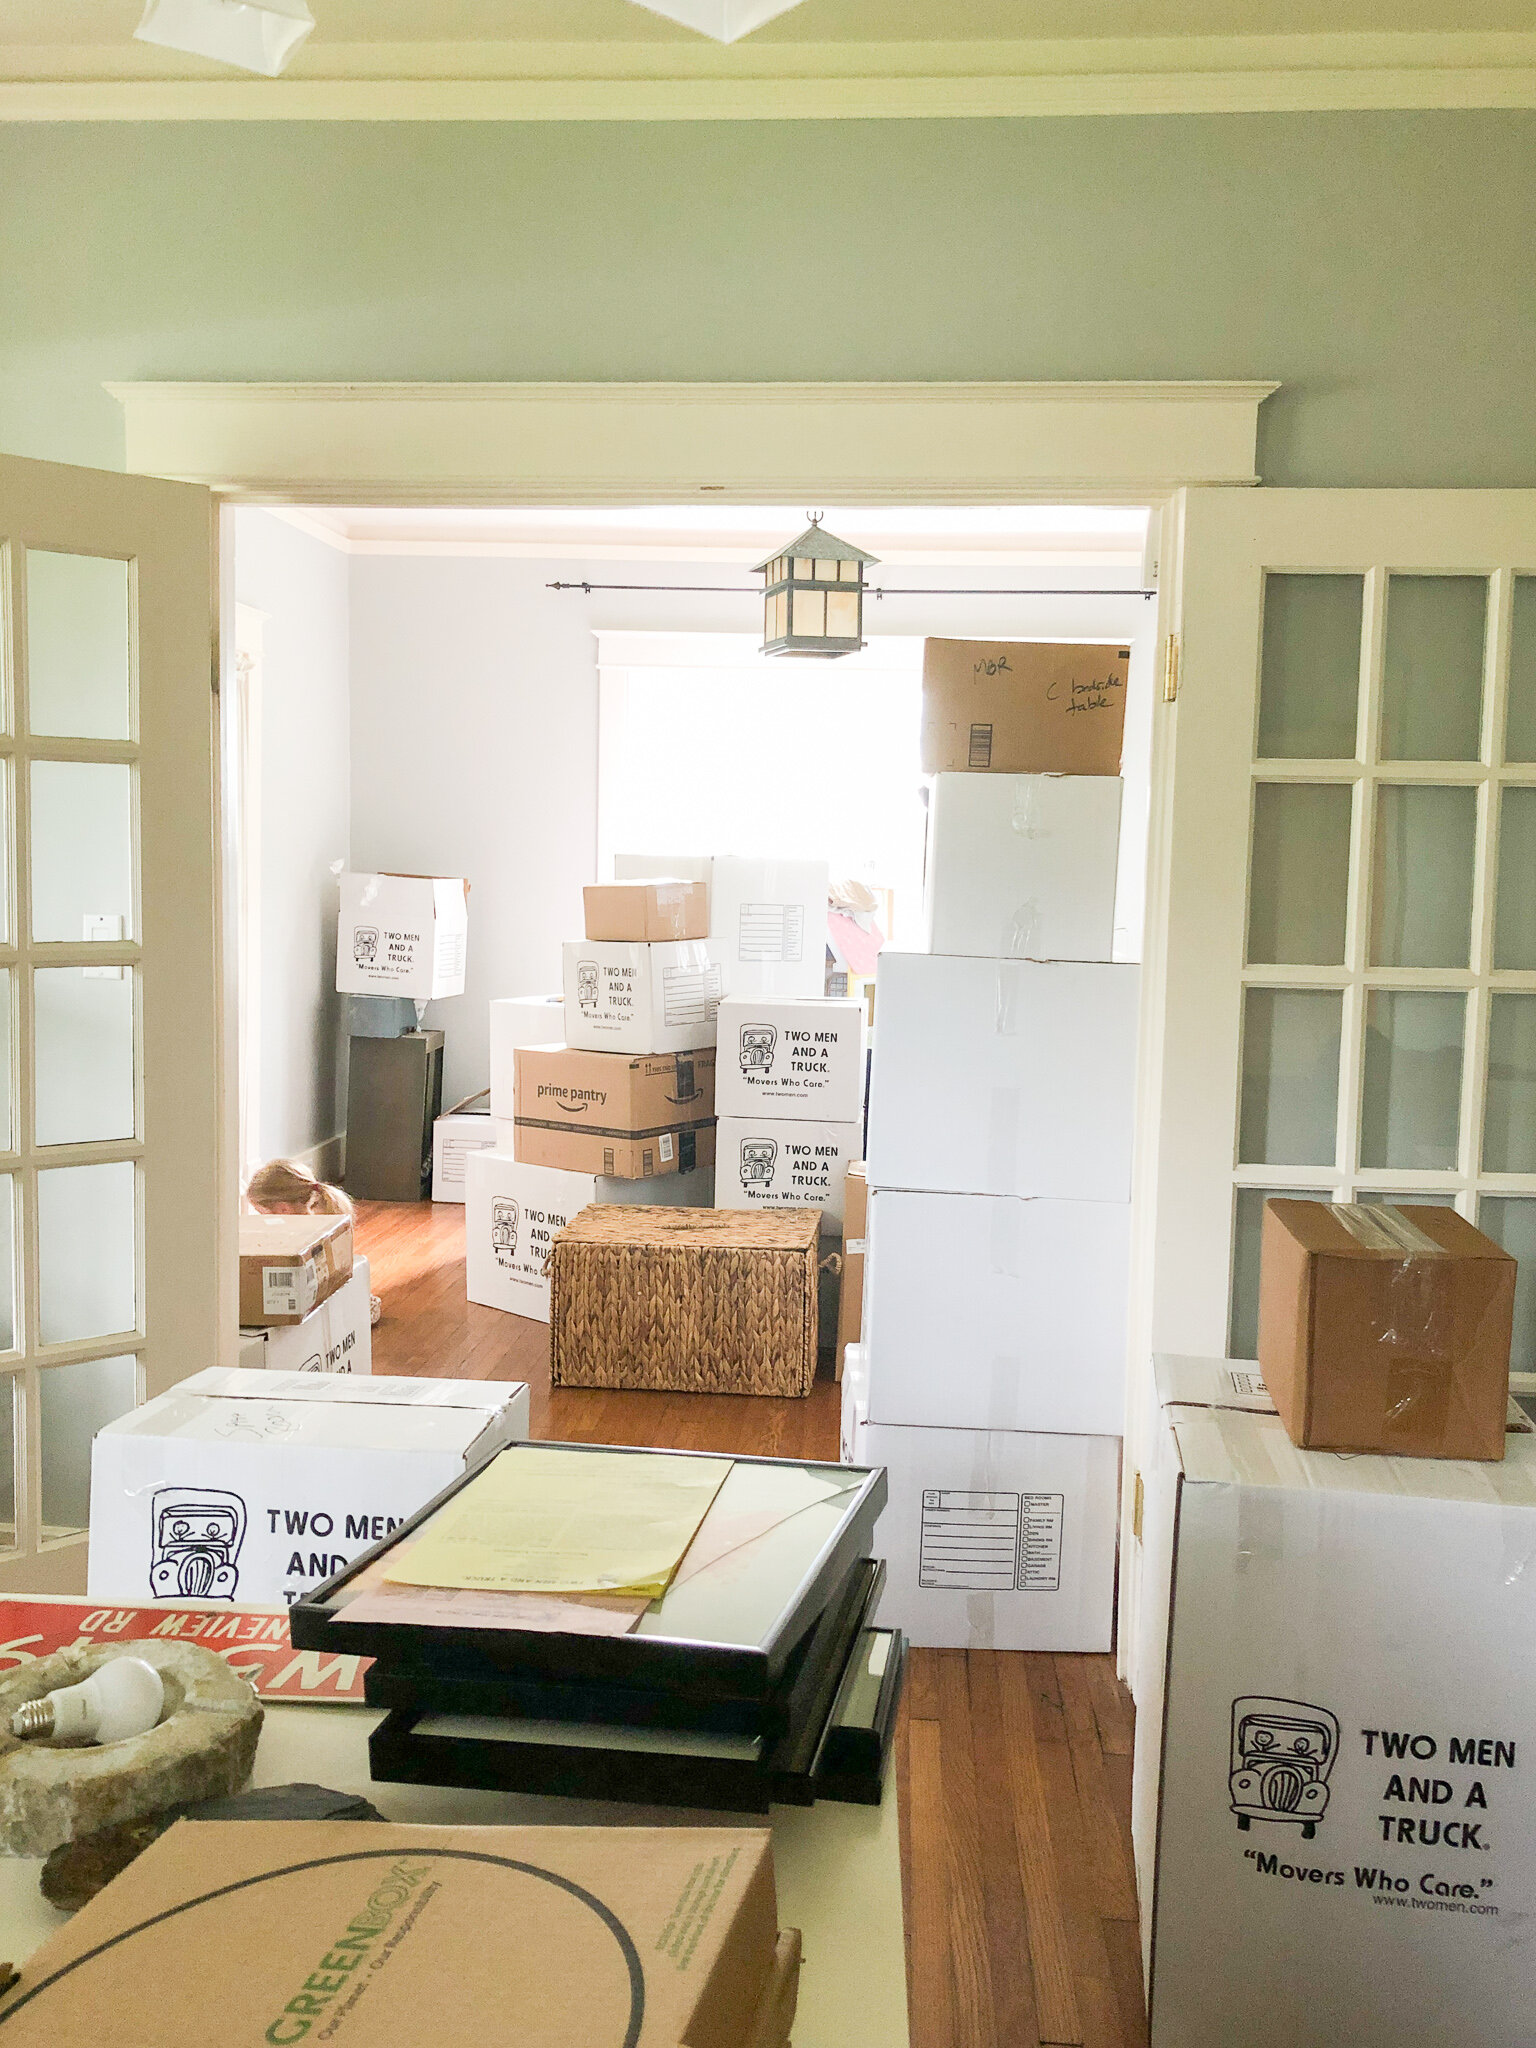 our 1920s bungalow on move-in day